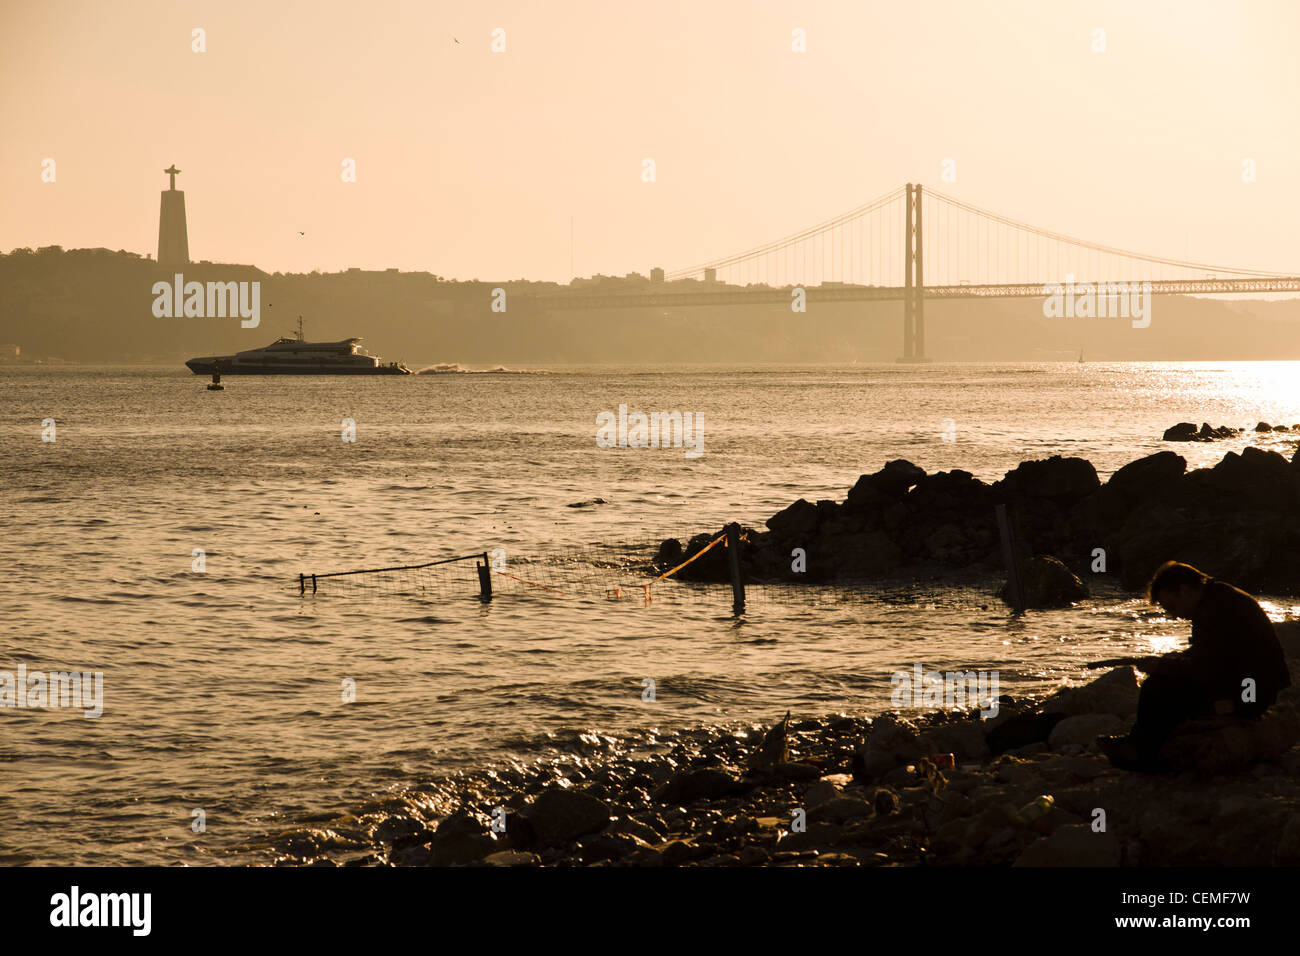 Man at the Tagus riverbank. Lisbon, Portugal. - Stock Image